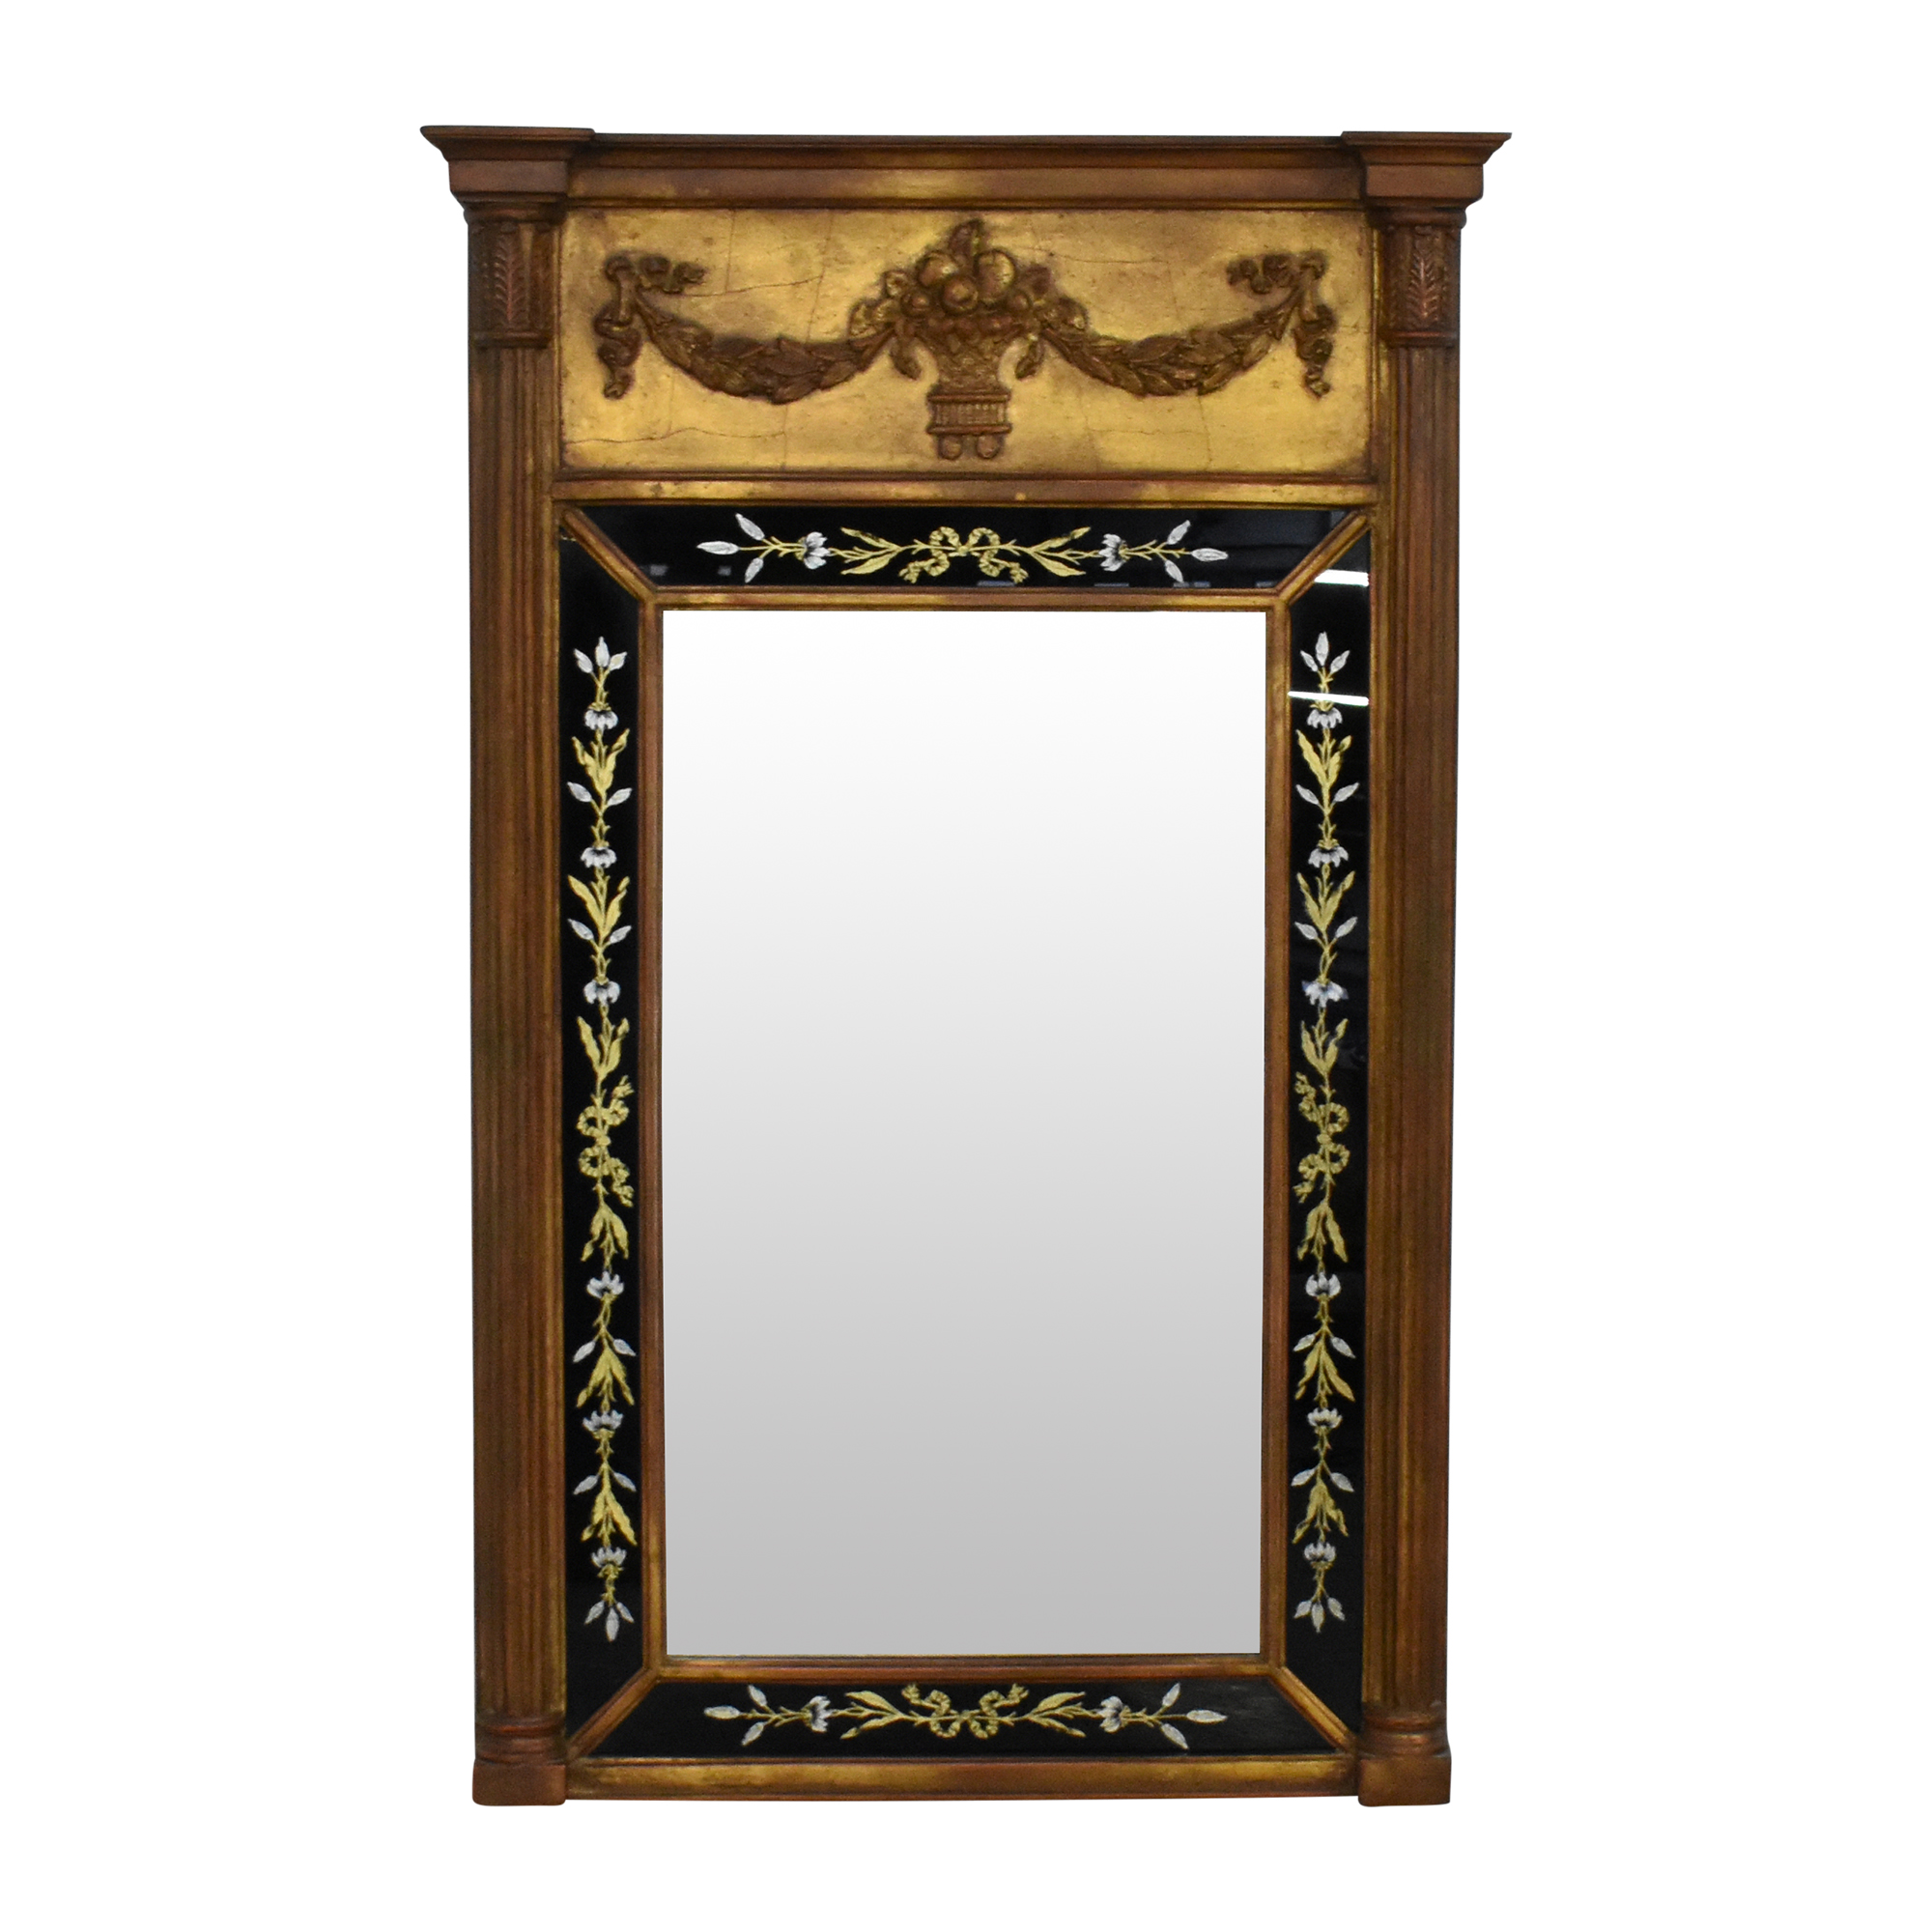 Decorative Trumeau Mirror dimensions